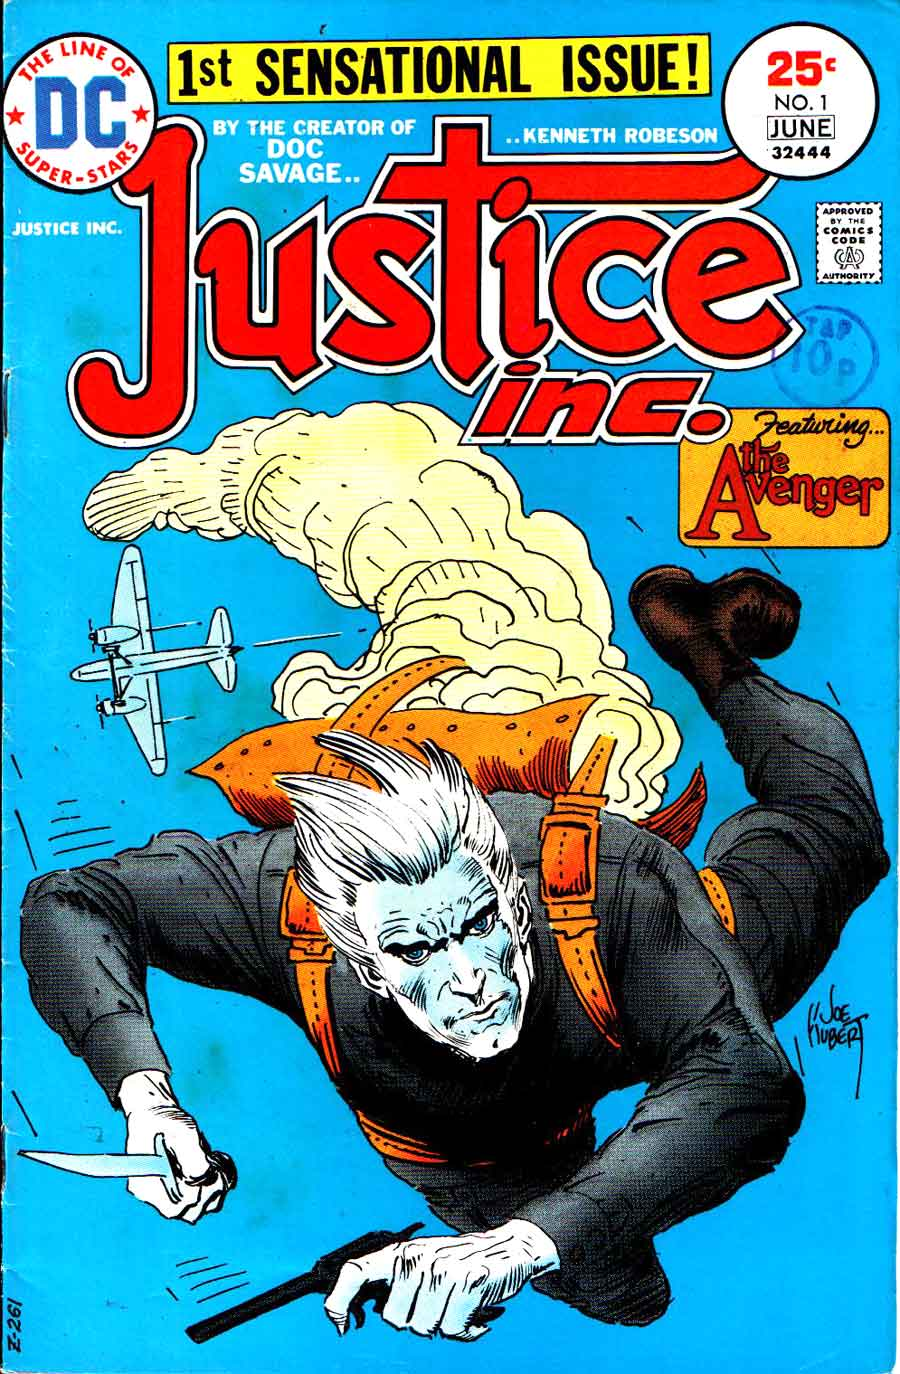 Justice Inc. v1 #1 dc bronze age comic book cover art by Joe Kubert